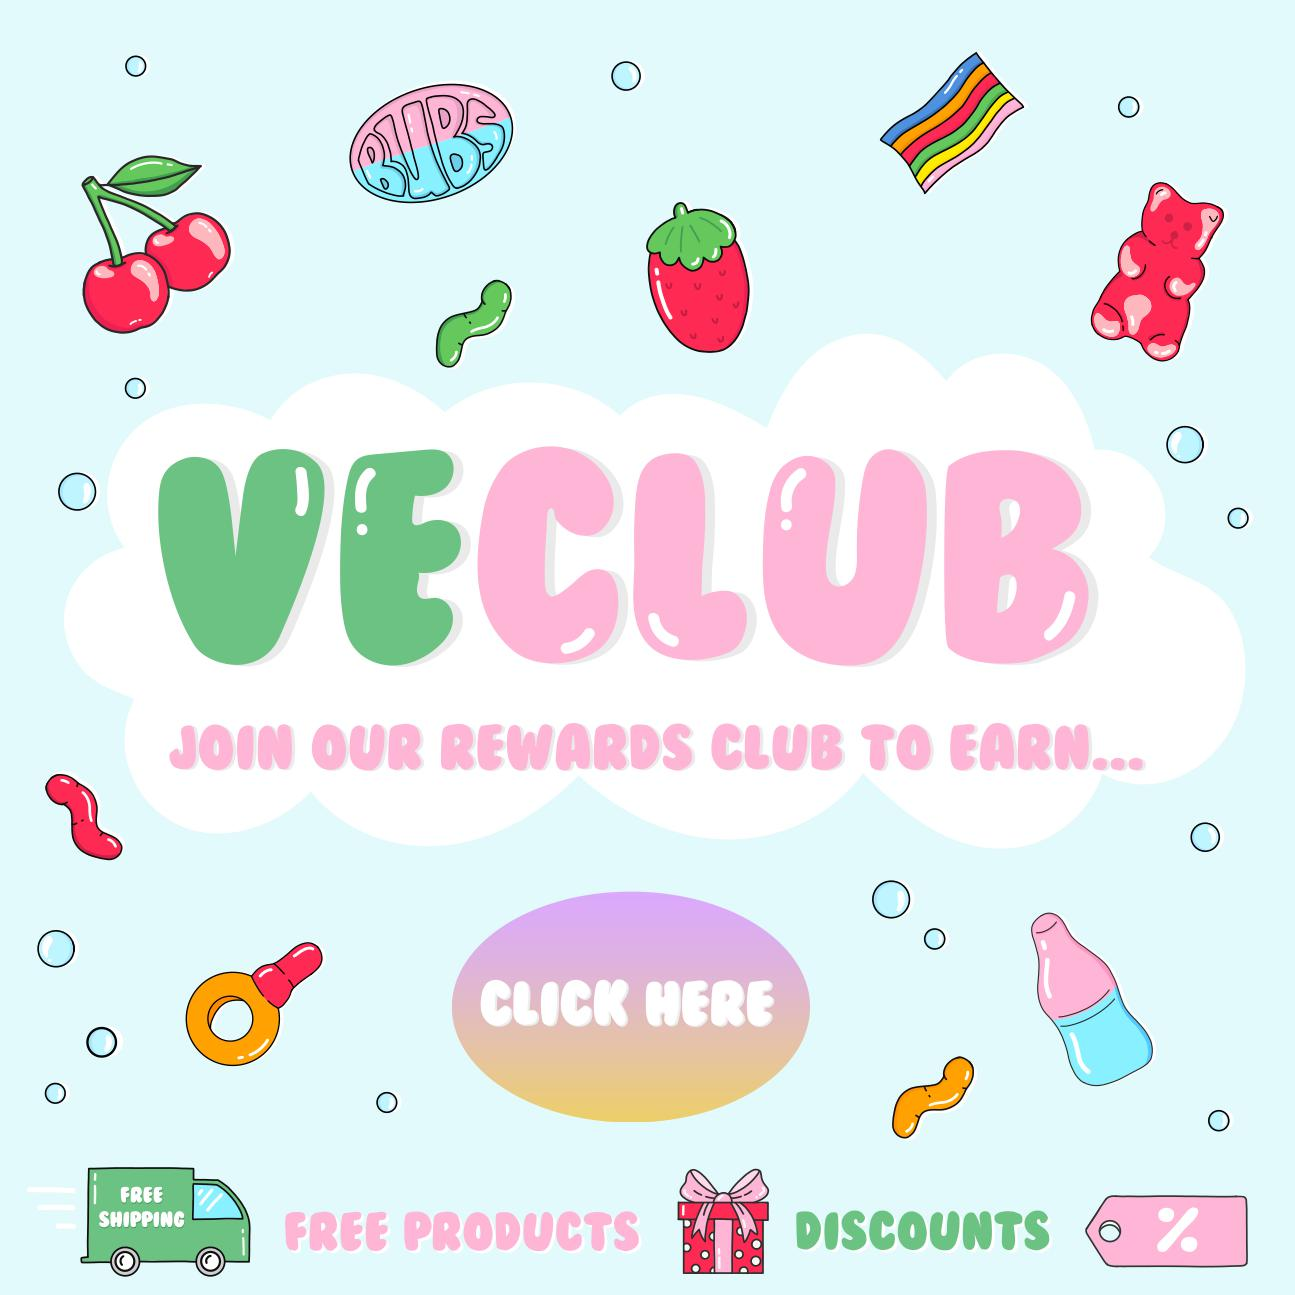 vegan sweets reward club